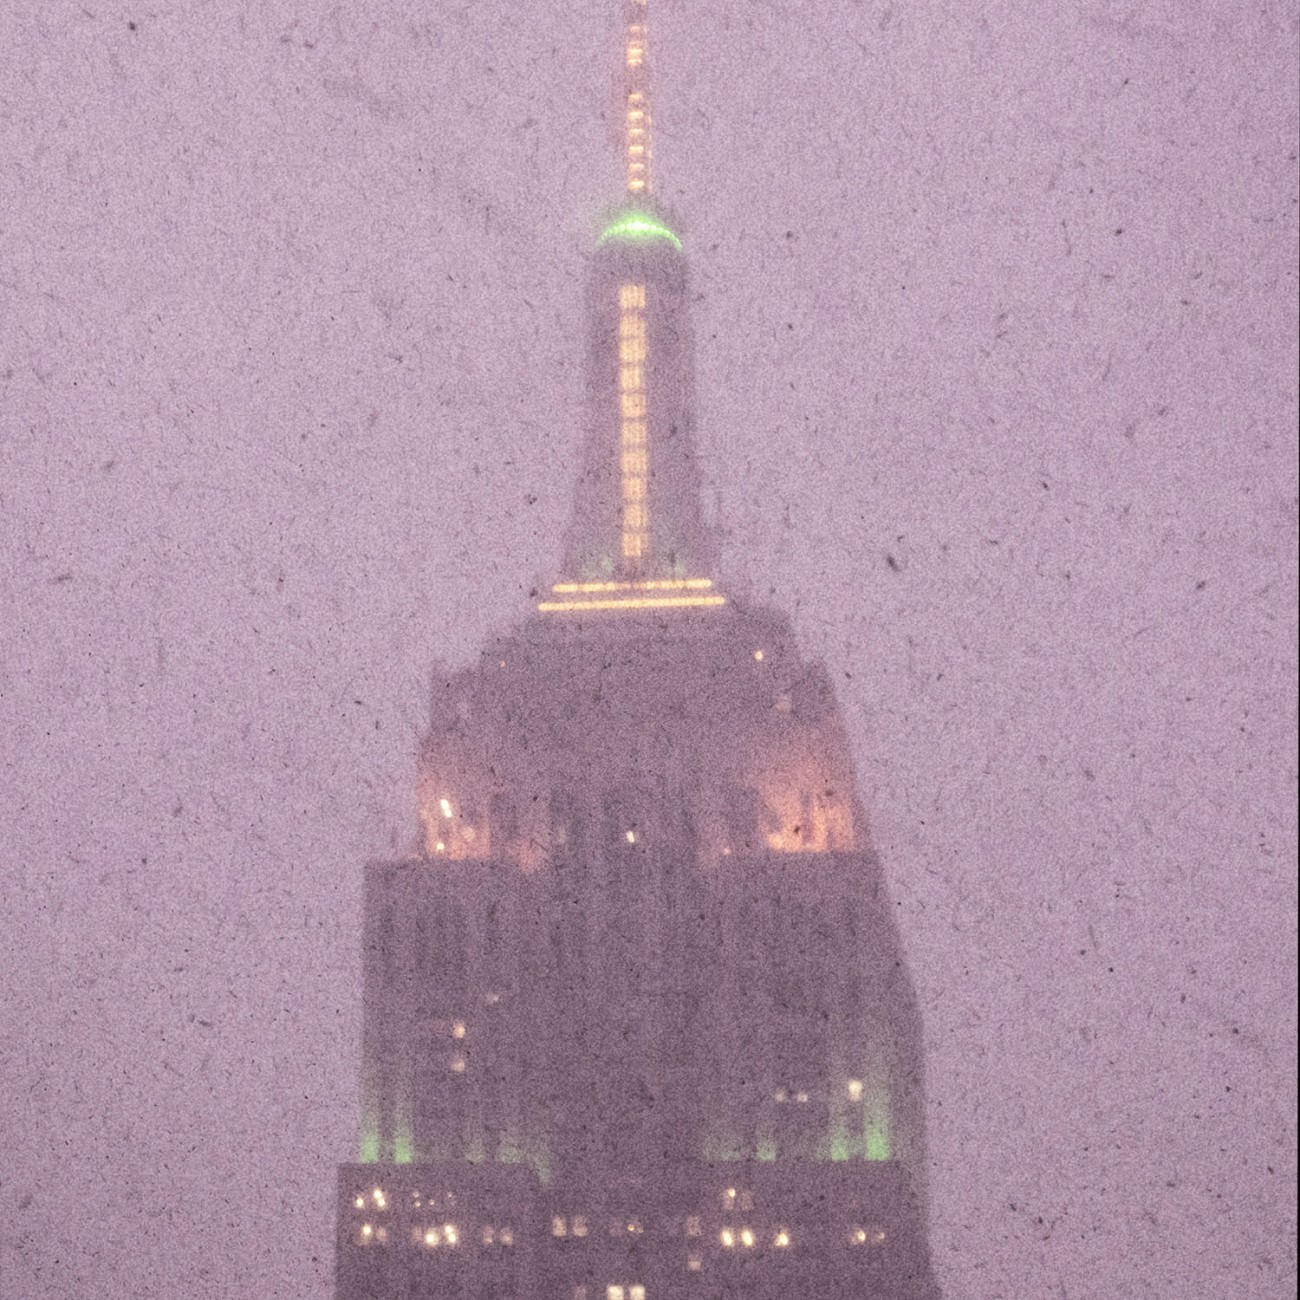 Snowy night, Empire State tower, NY, 2015